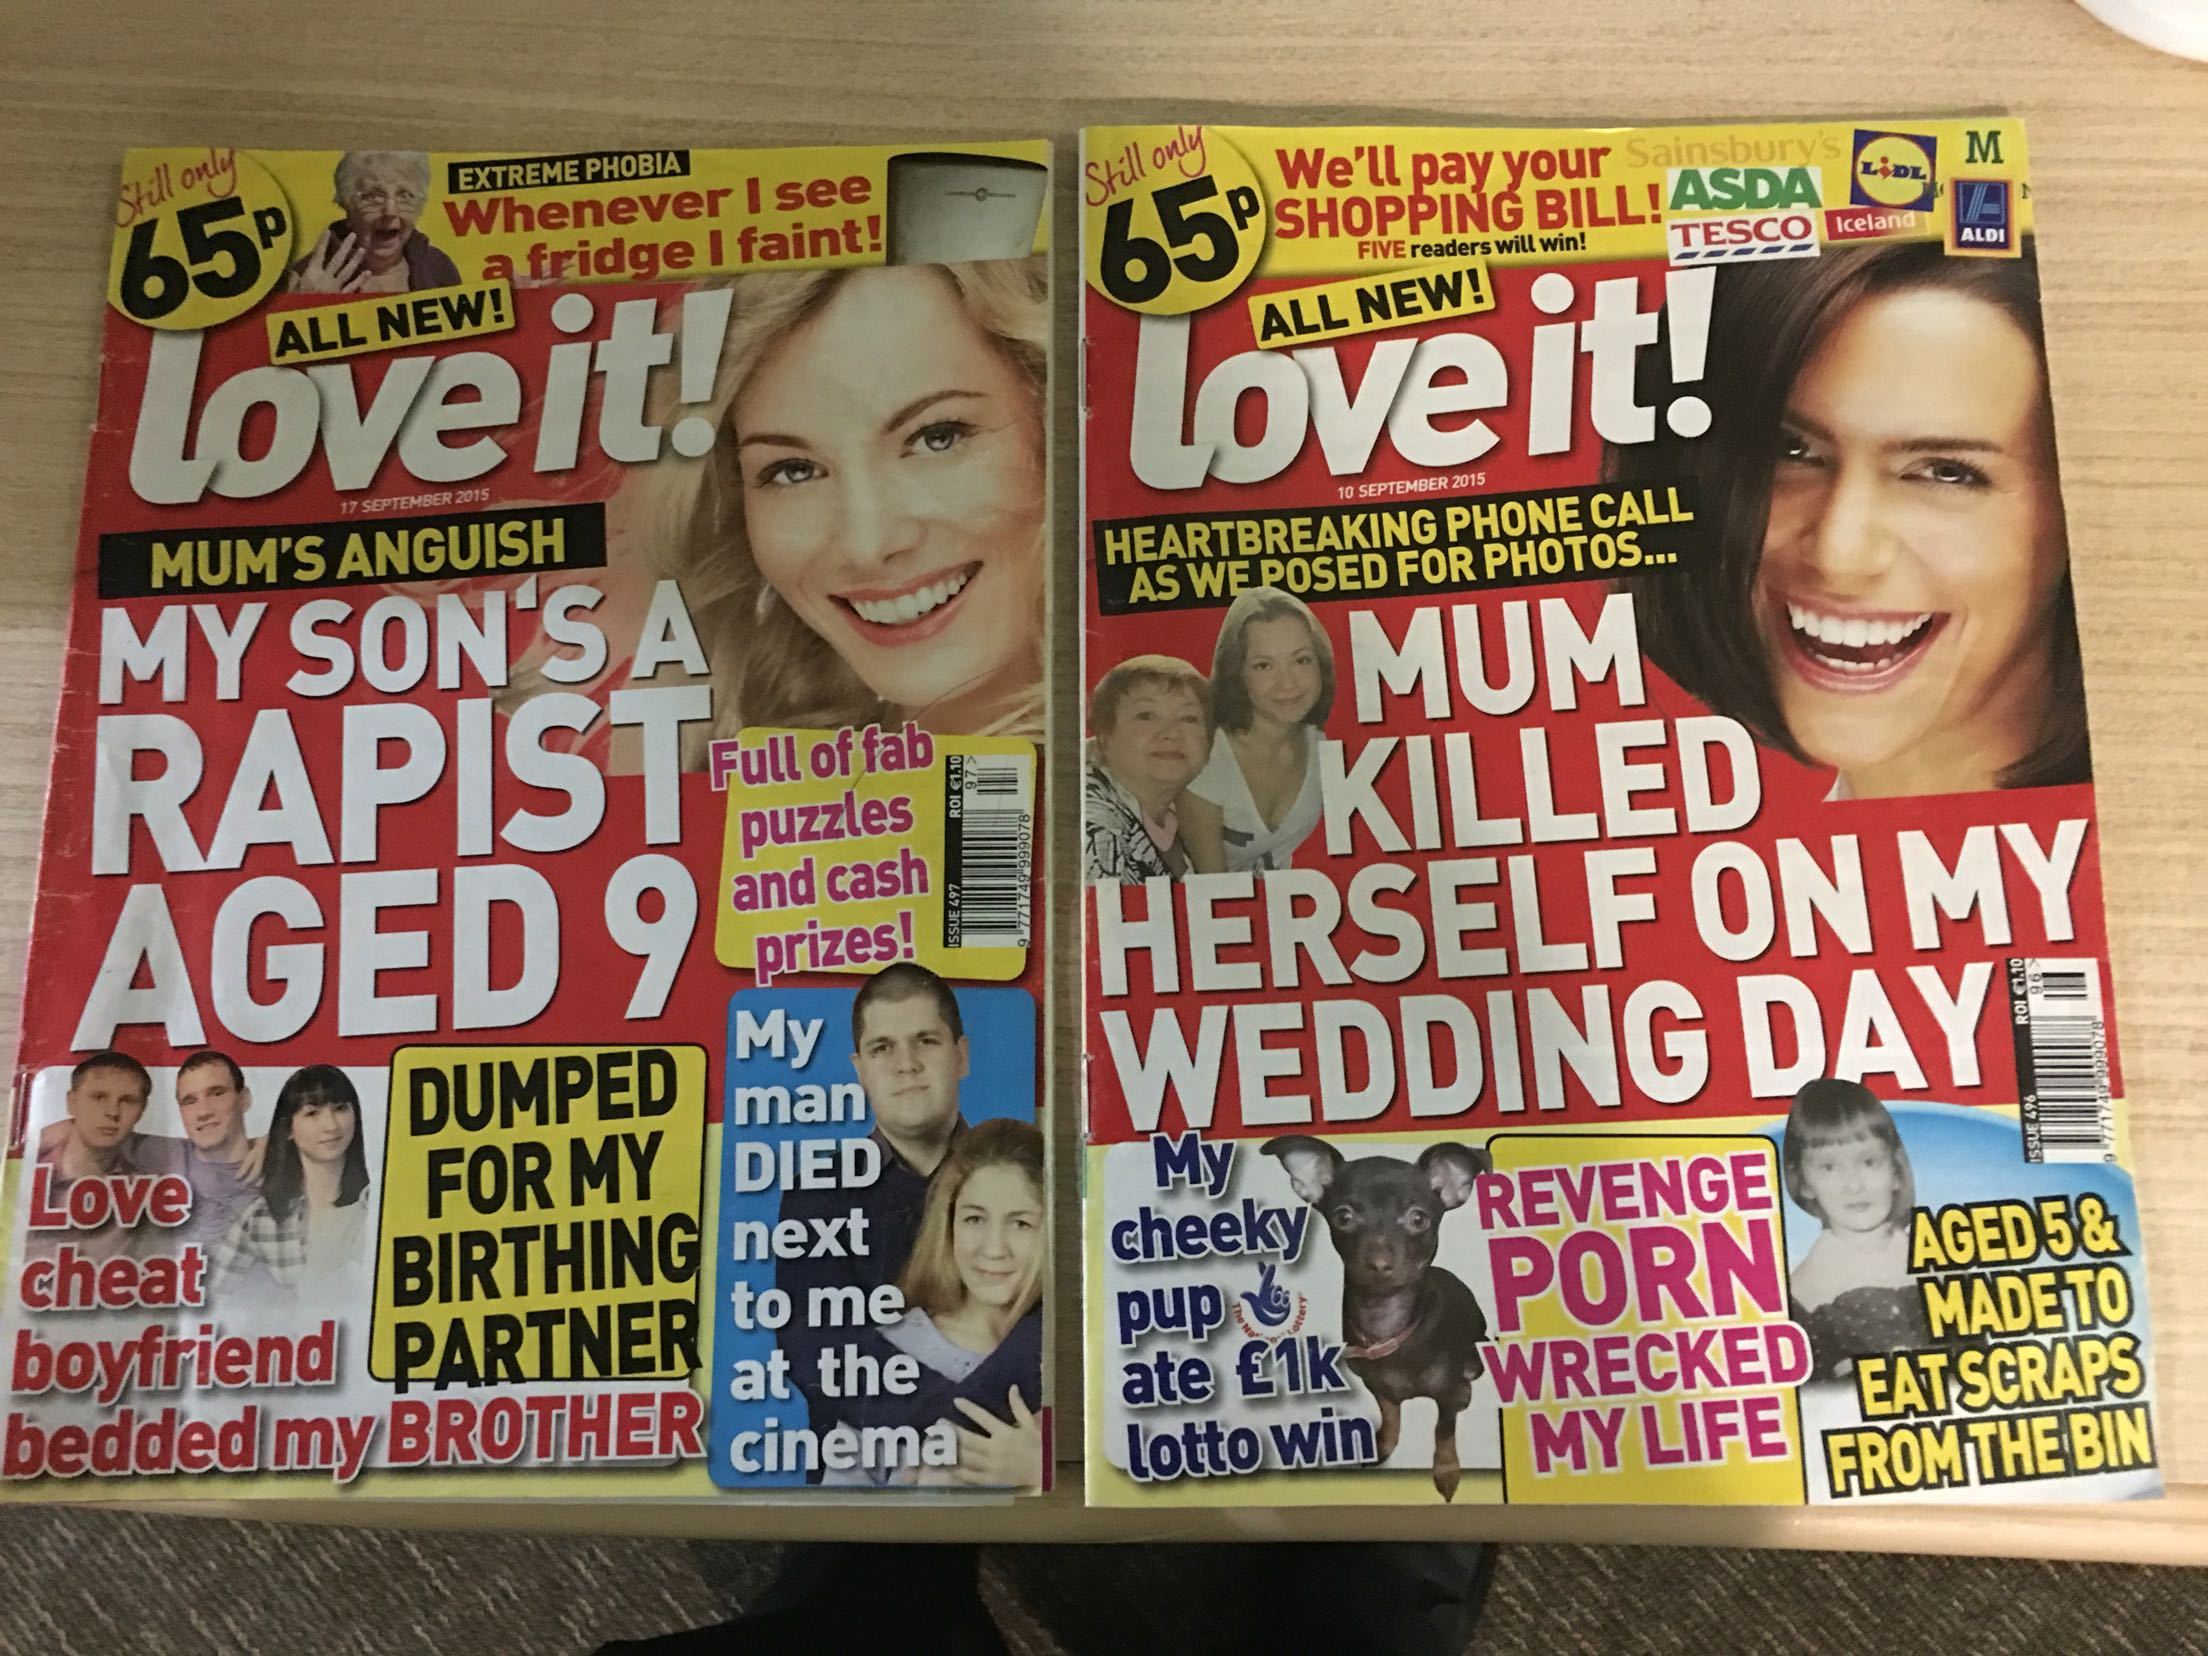 why tabloid magazines are appealing In terms of paper size, a tabloid is about the size of a large magazine, with a depth of around 14 inches (36 centimeters) and a width of around 10 inches (25 centimeters) the tabloid is essentially half the size of the larger broadsheet format, making it much more compact and easy to handle the precise paper size can very.